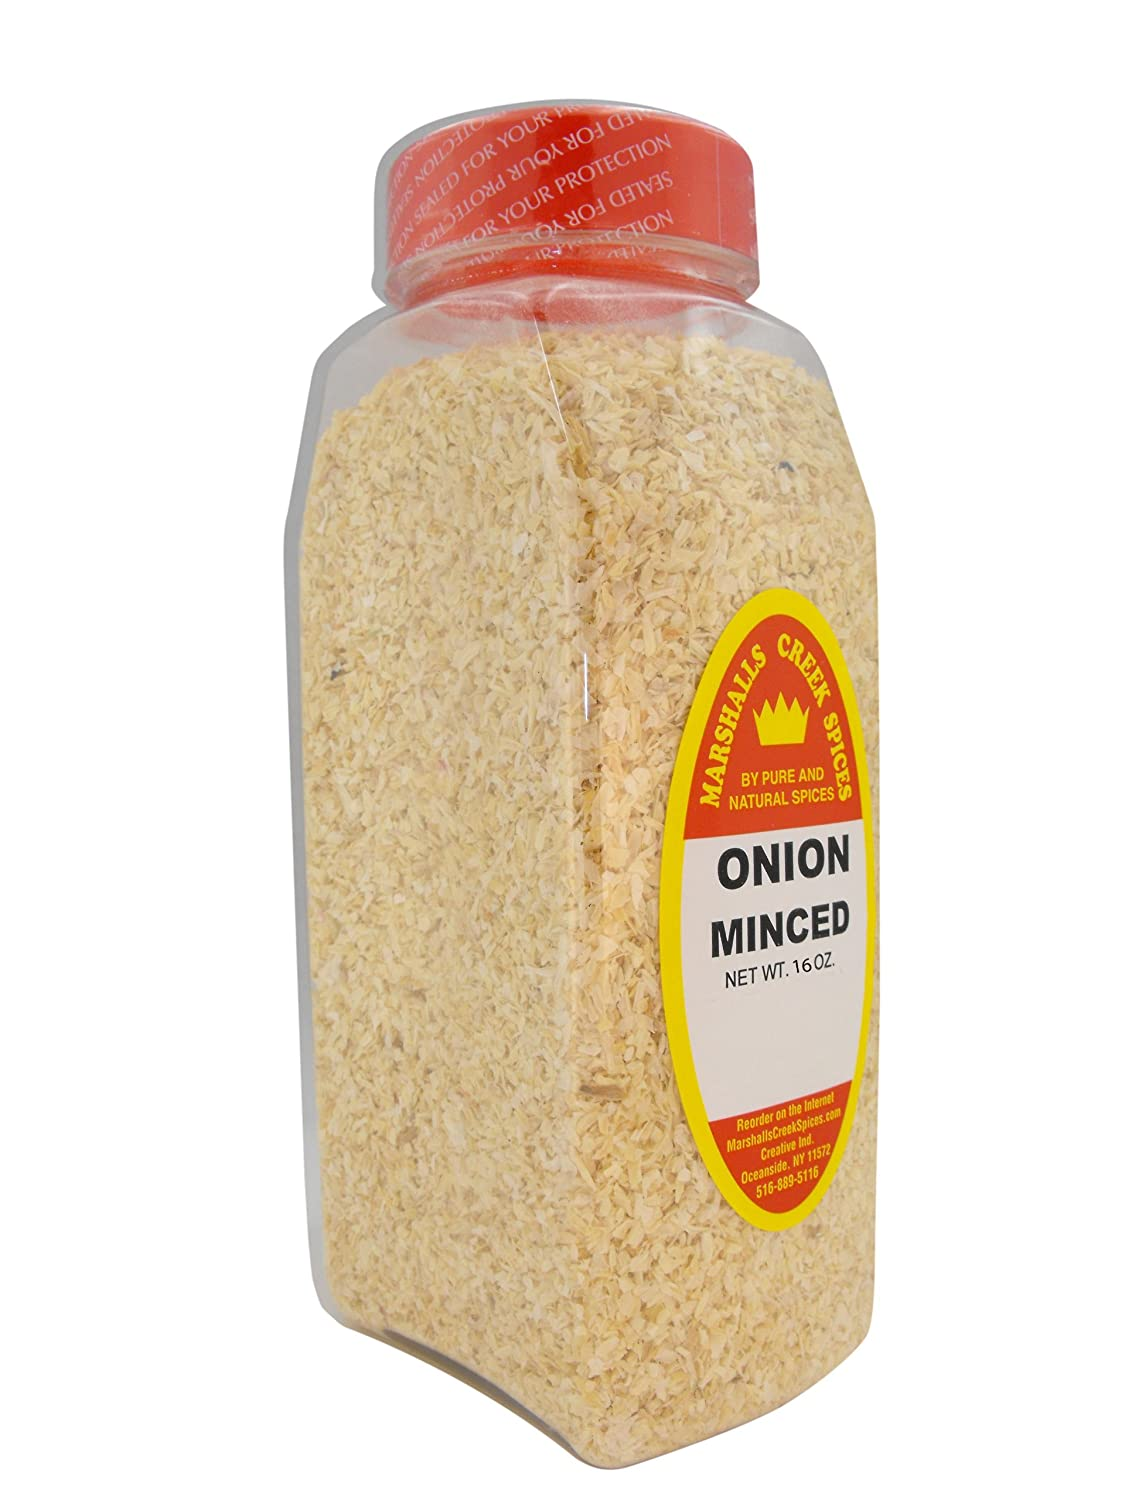 Marshall's Creek Spices Marshalls Onion Max 68% OFF Limited price sale Minced Spice Co.